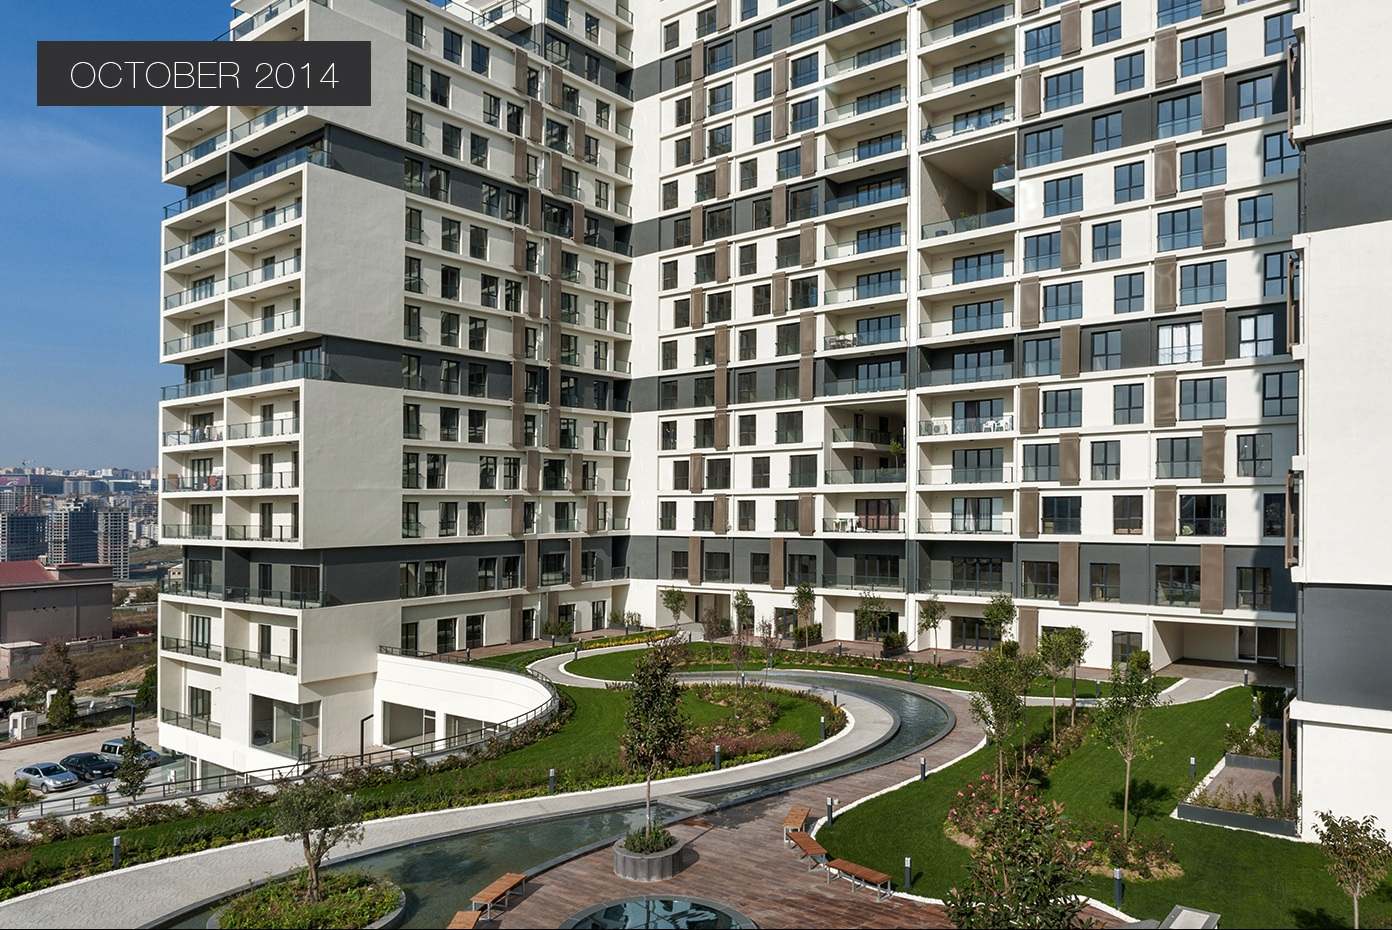 Commercial property for sale in Istanbul 9